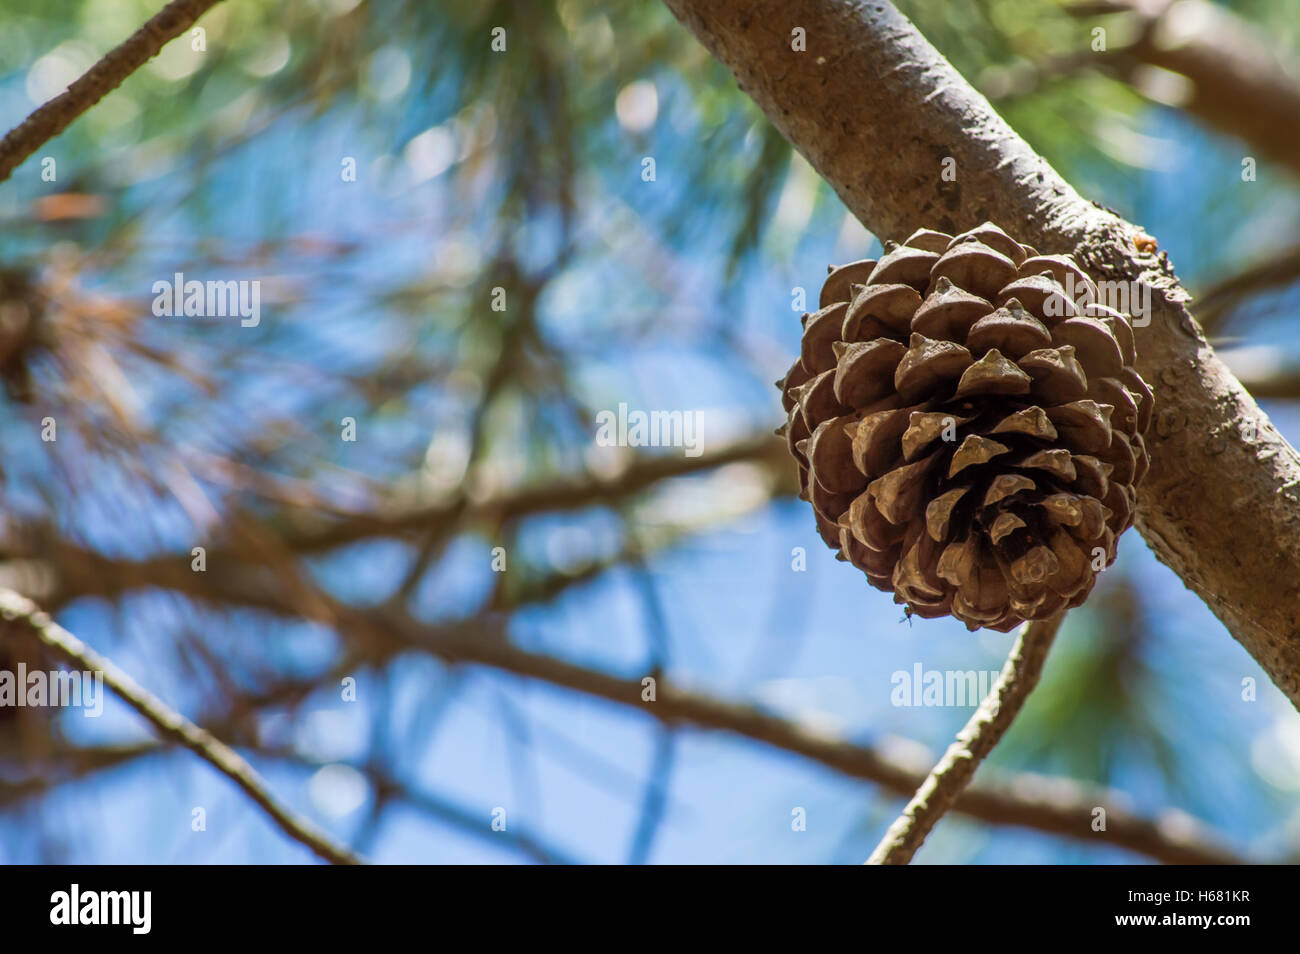 Pine cone on a tree at a seaside - Stock Image